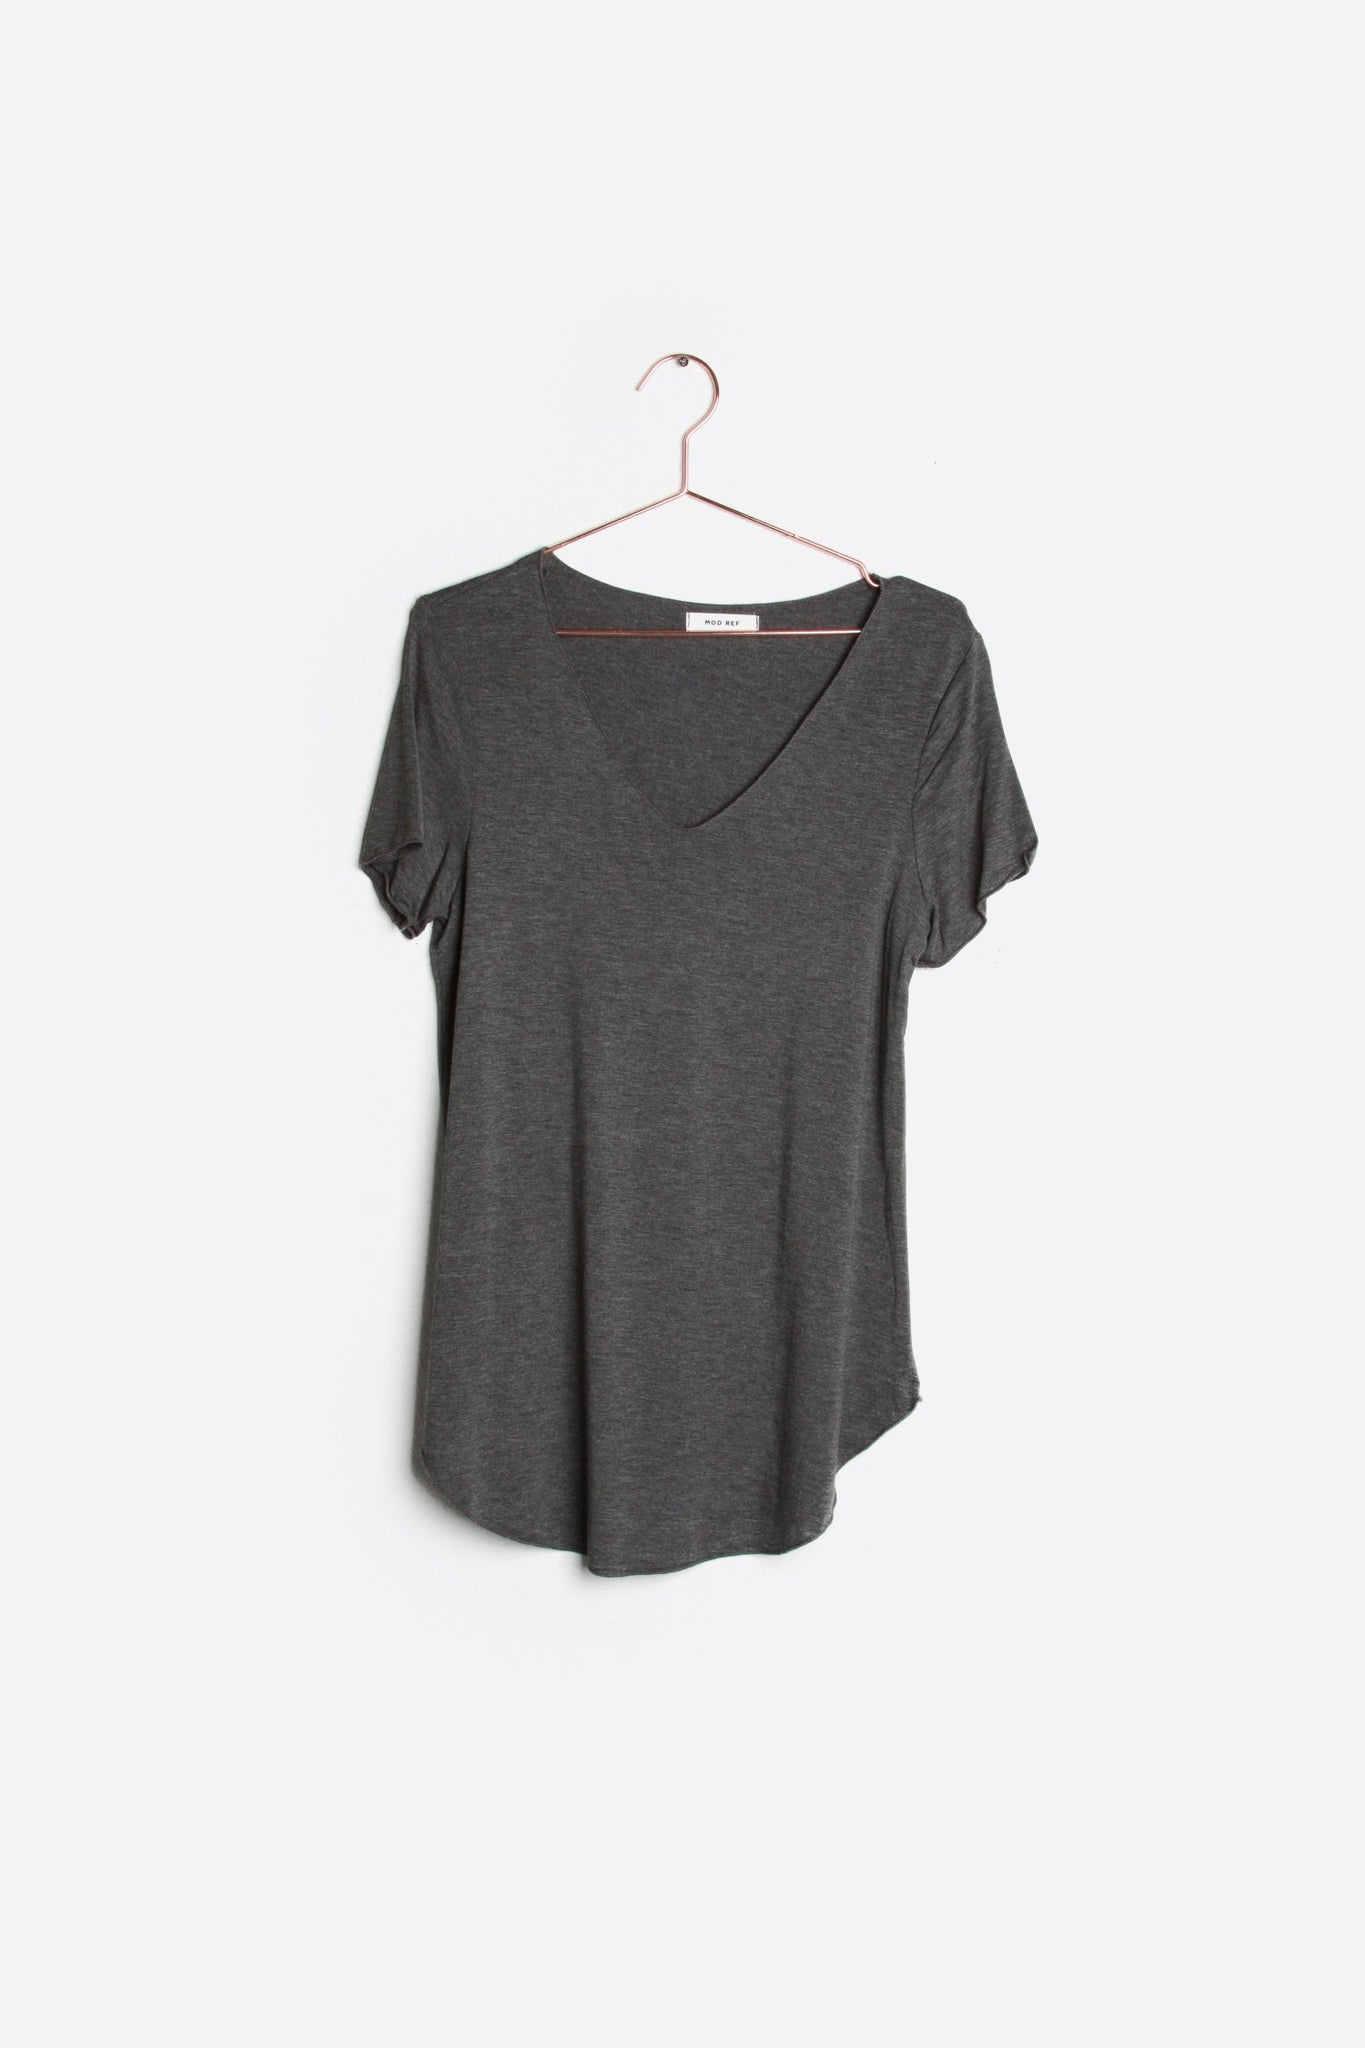 Everyday Charcoal Tee